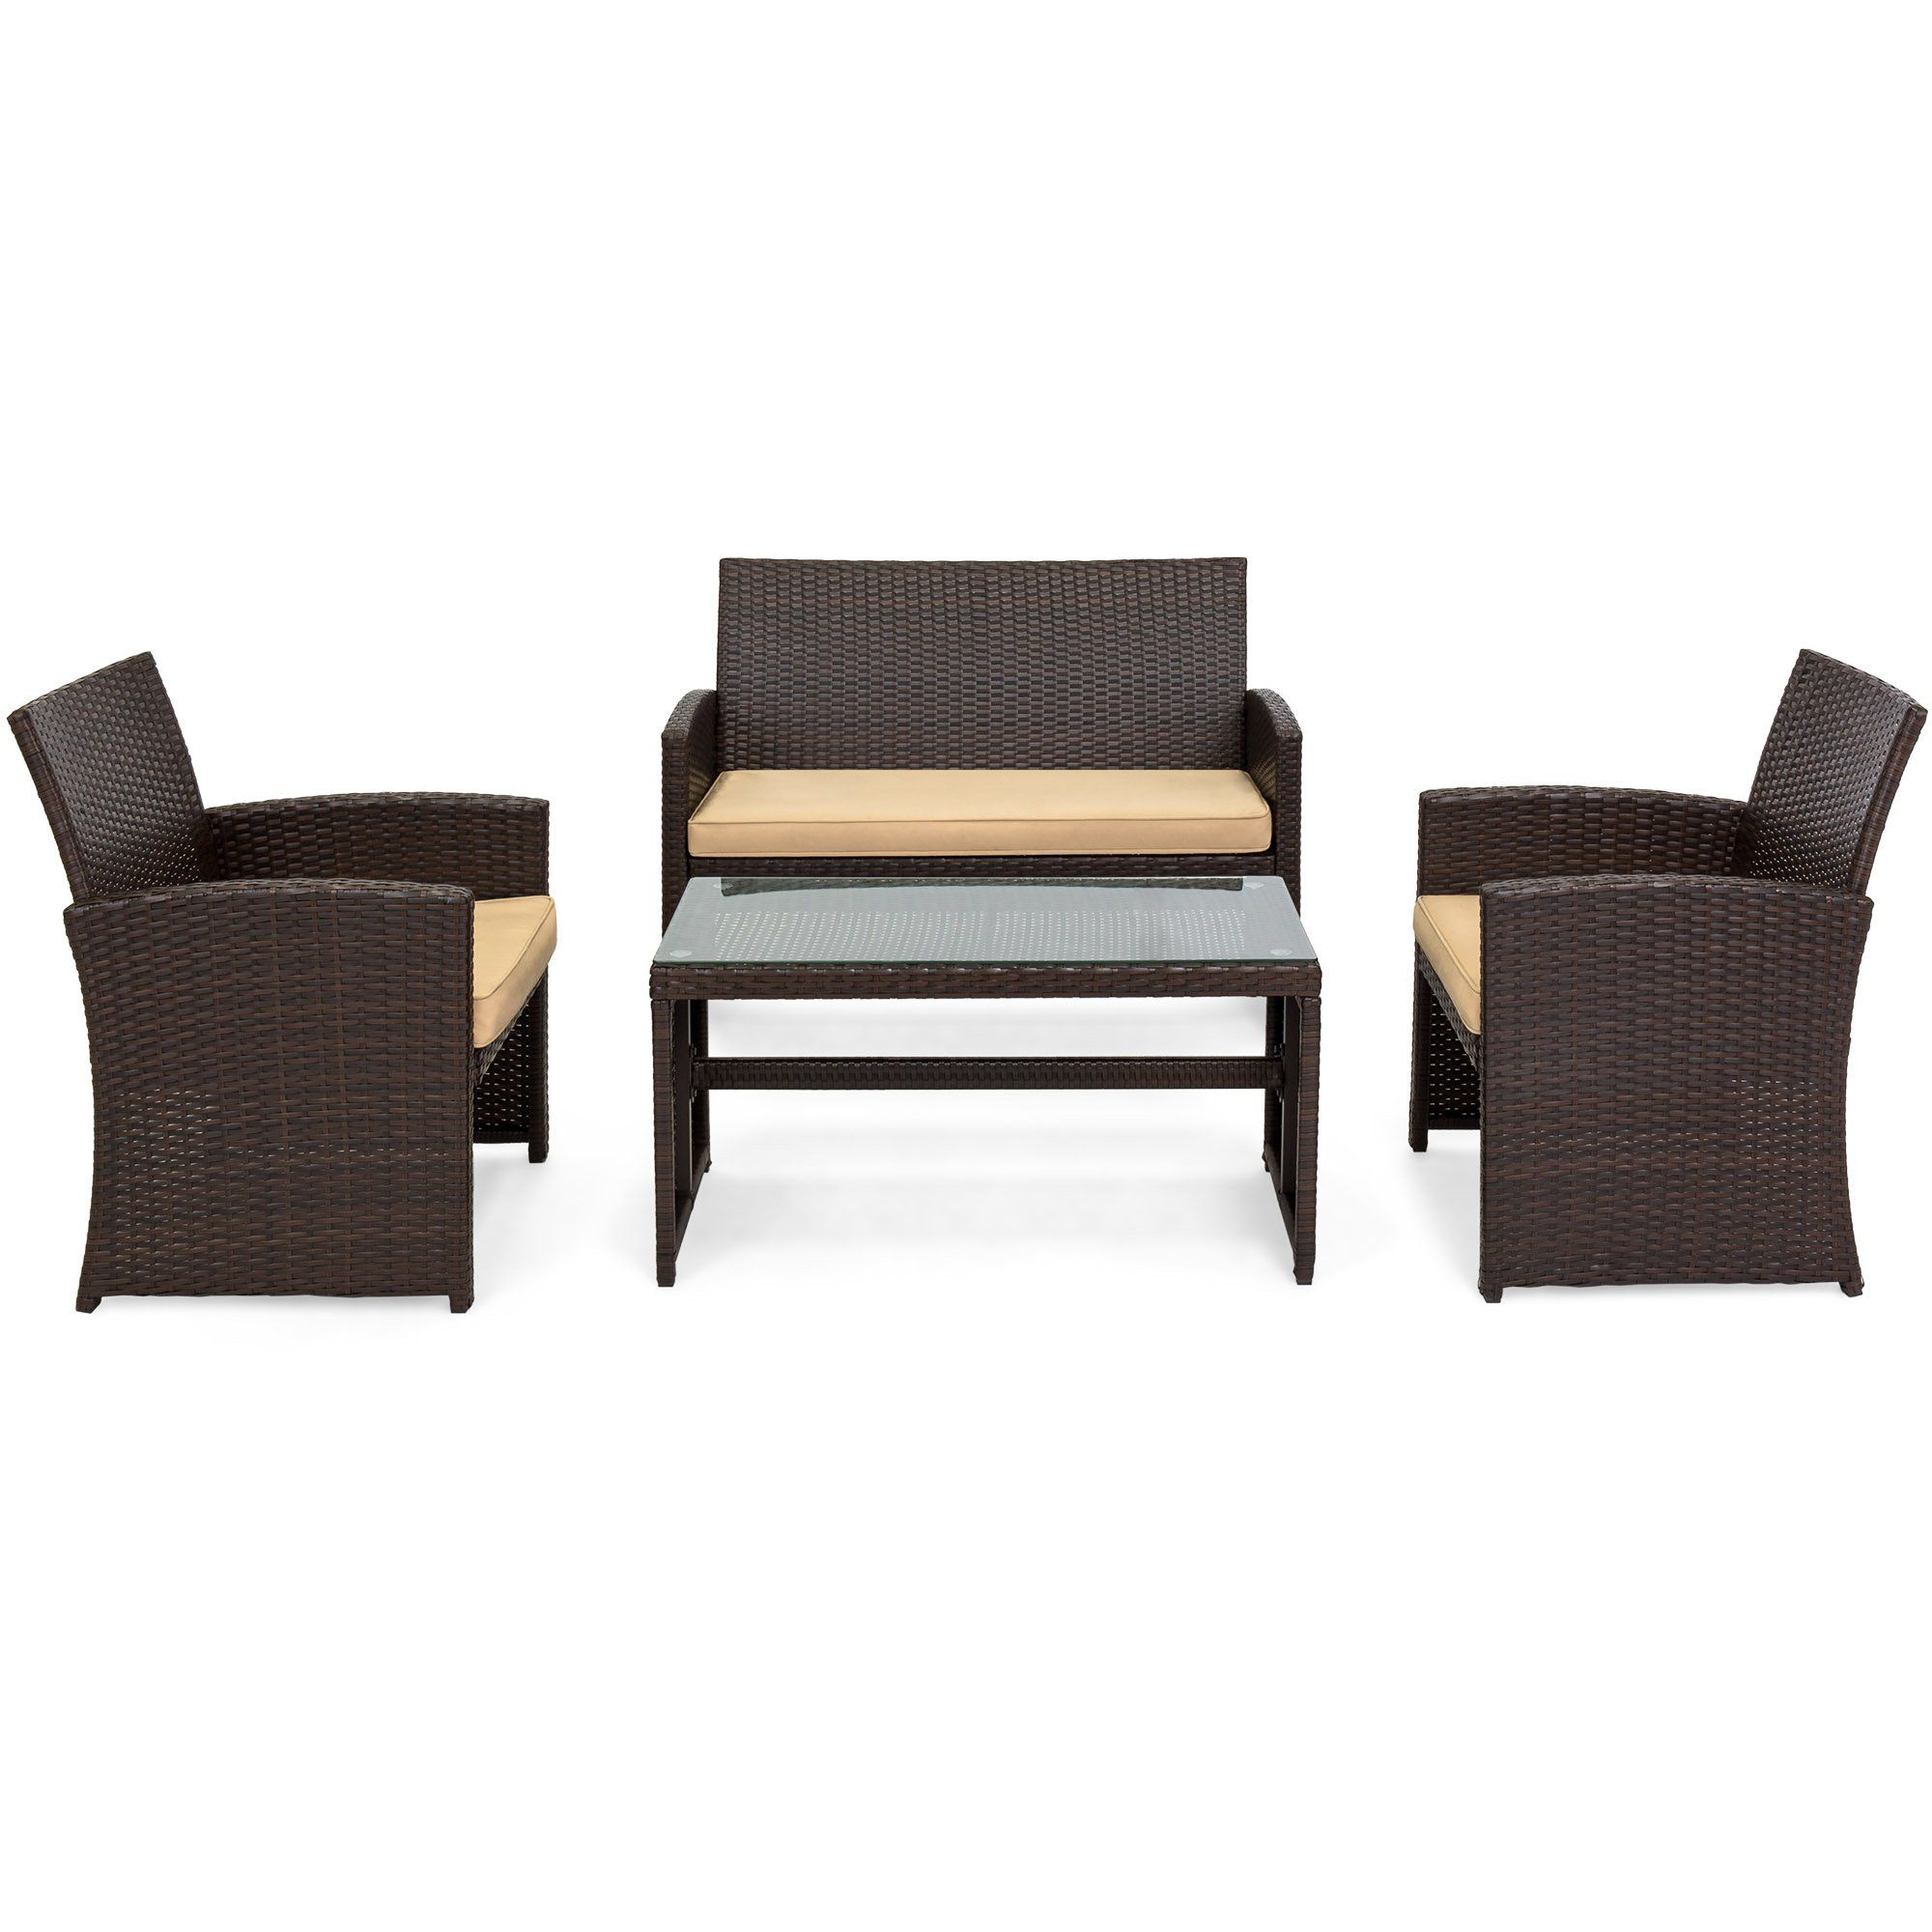 Best Choice Products 4piece Wicker Patio Furniture Set W Tempered